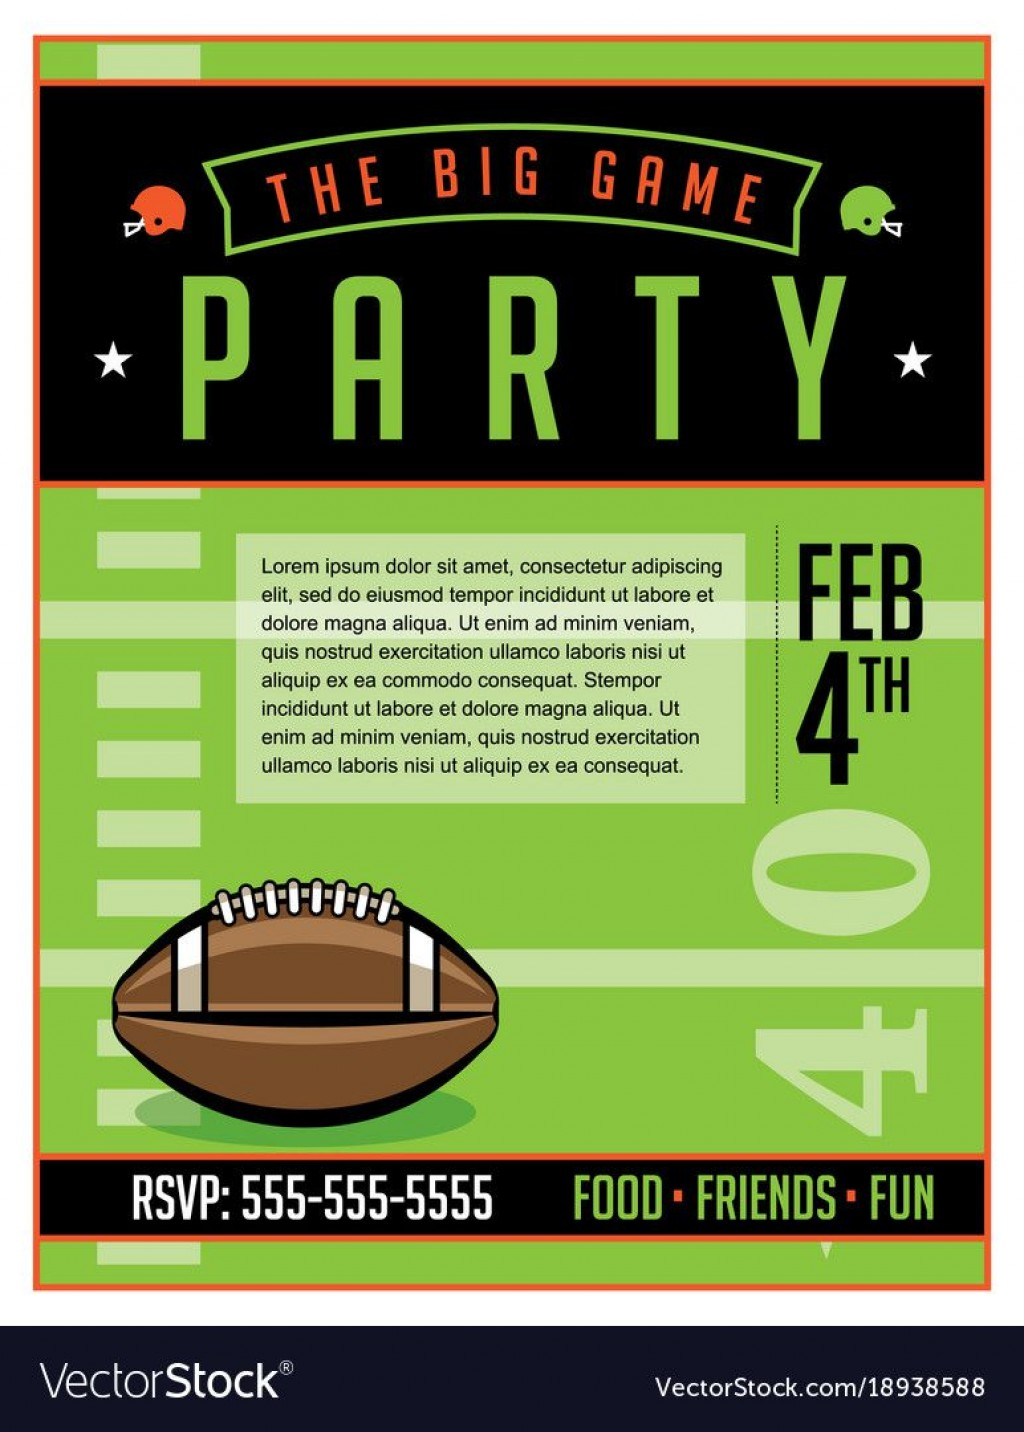 002 Surprising Free Tailgate Party Flyer Template Download Photo Large